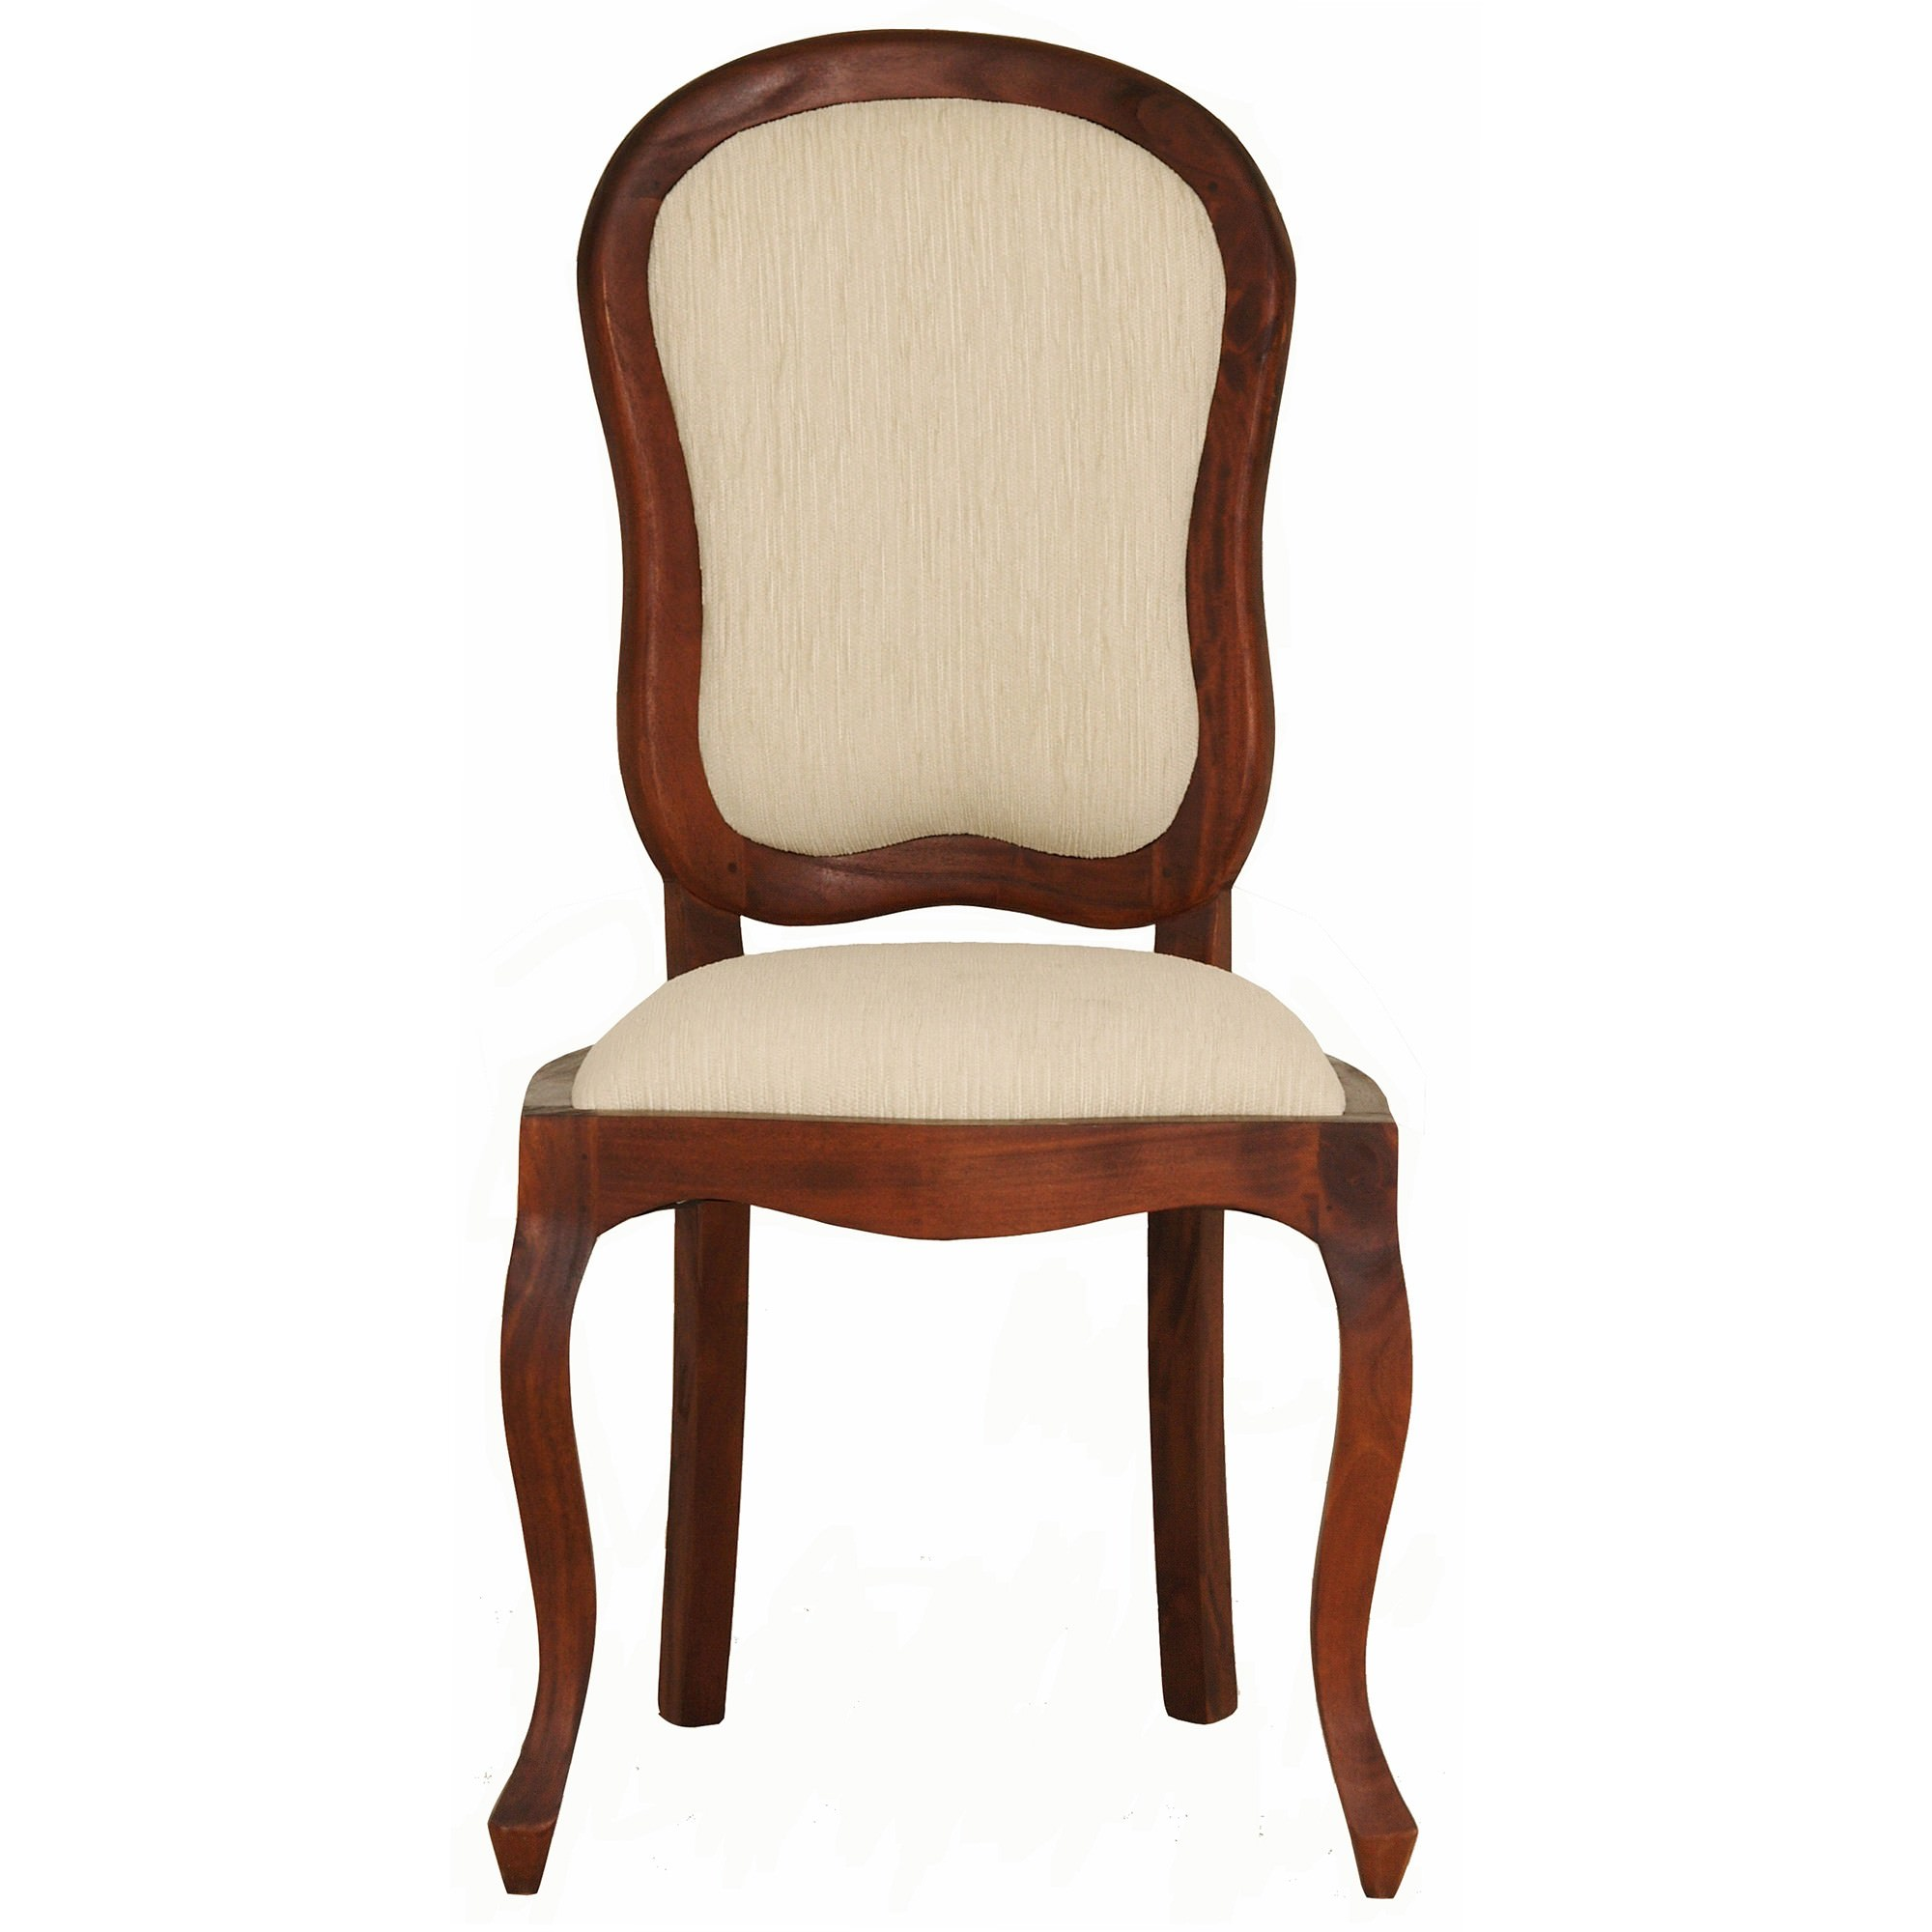 Queen Ann Solid Mahogany Timber Dining Chair - Mahogany